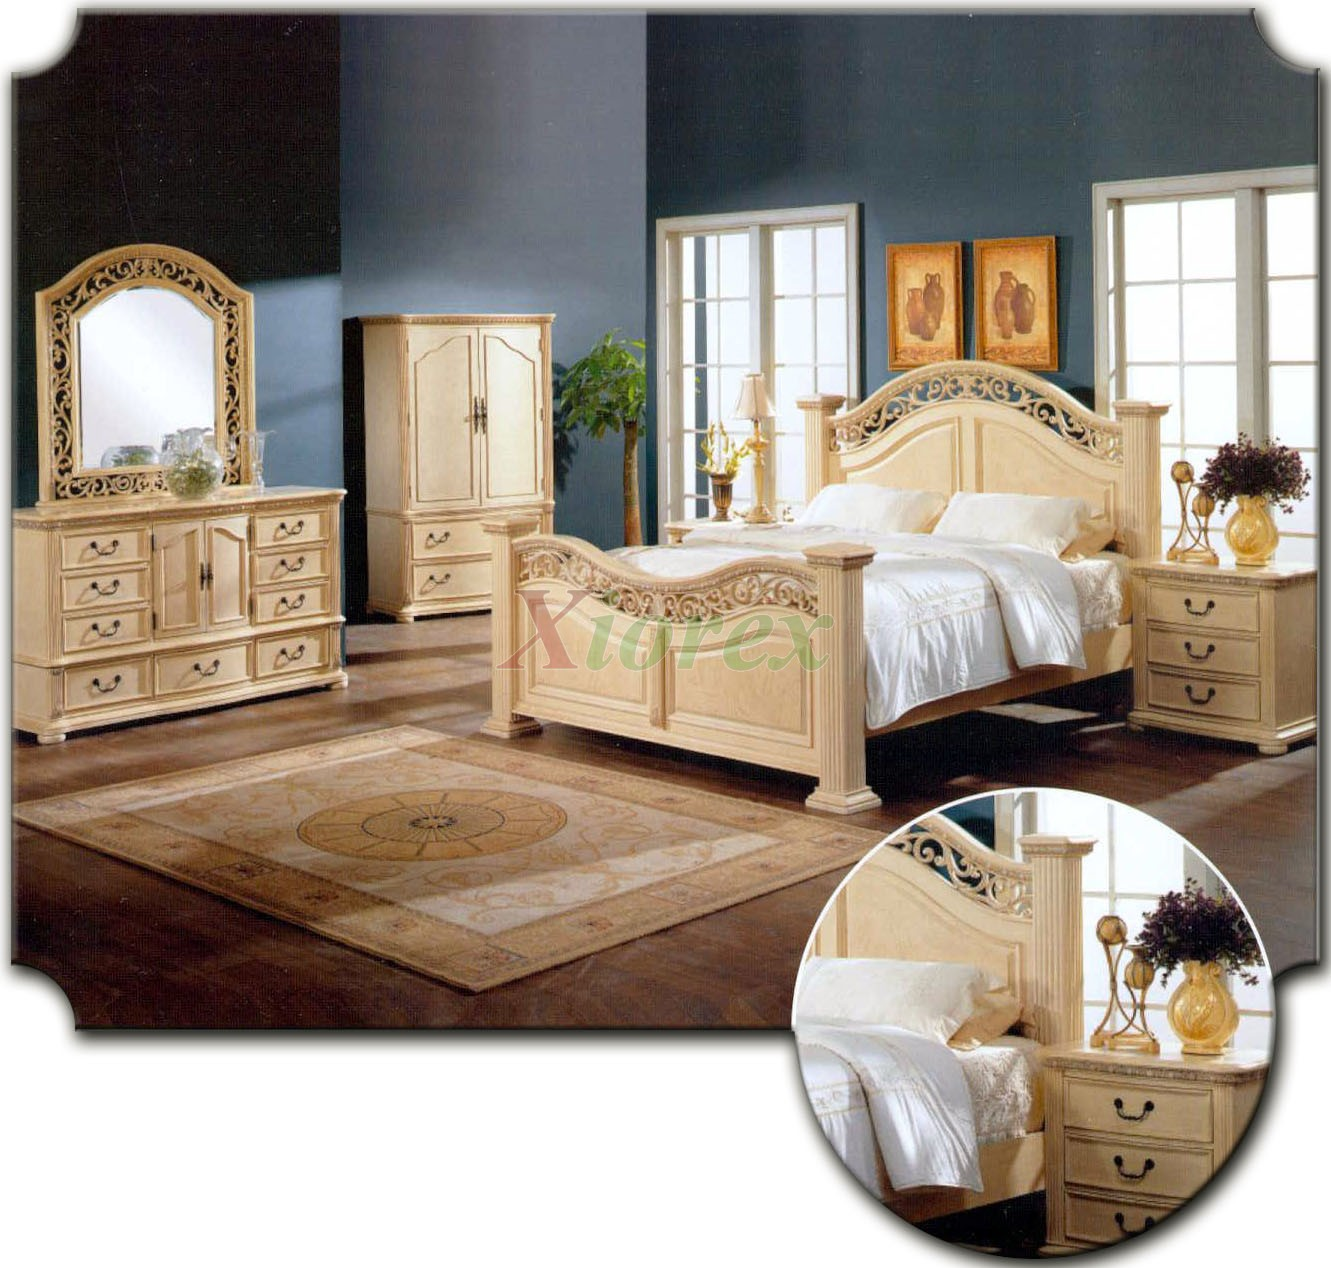 Perfect King Bedroom Furniture Sets 1331 x 1268 · 301 kB · jpeg